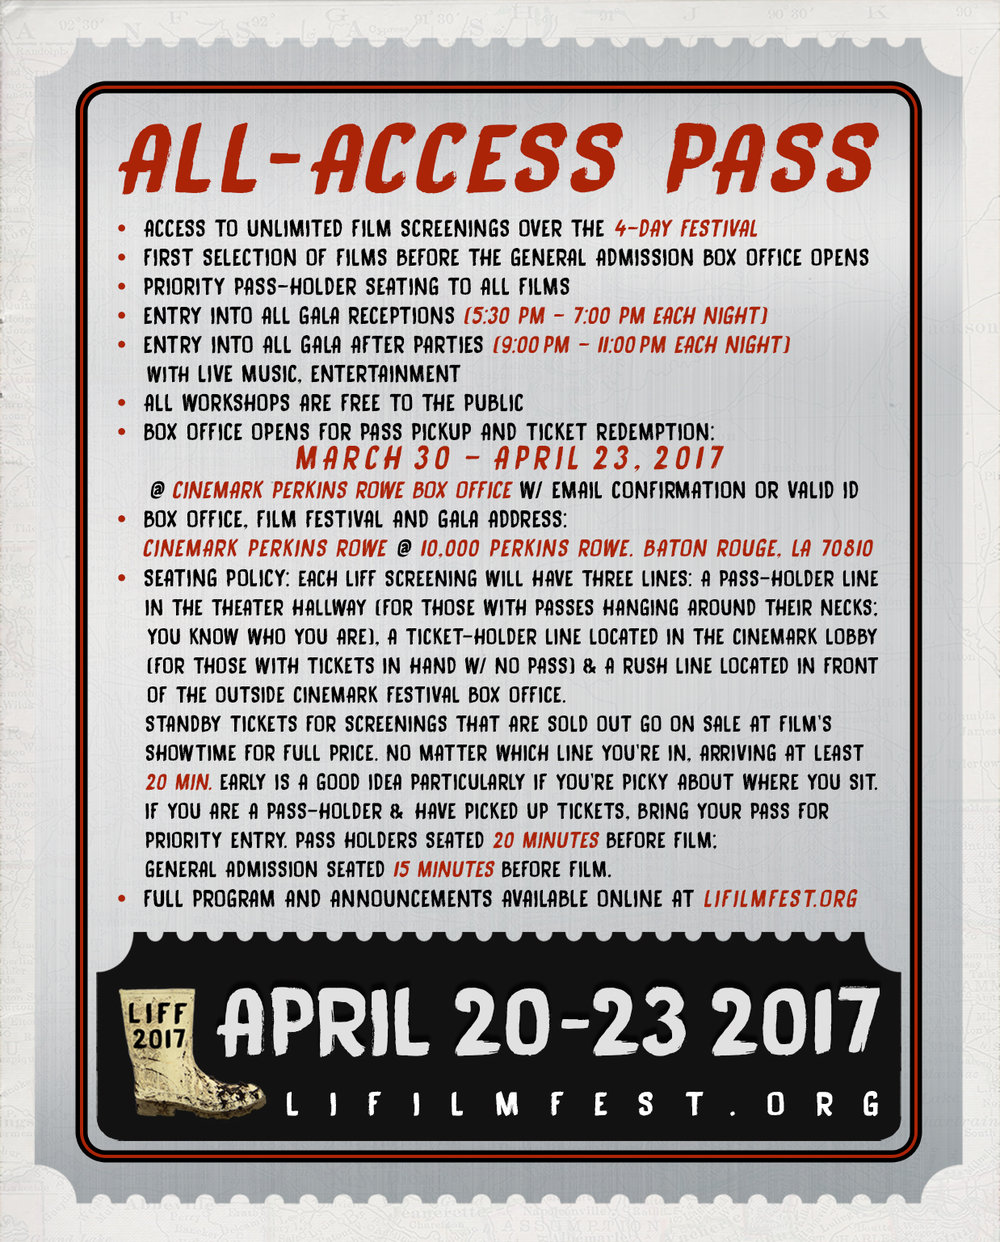 LIFF 2017 All-ACCESS PASS (back2) (1).jpg